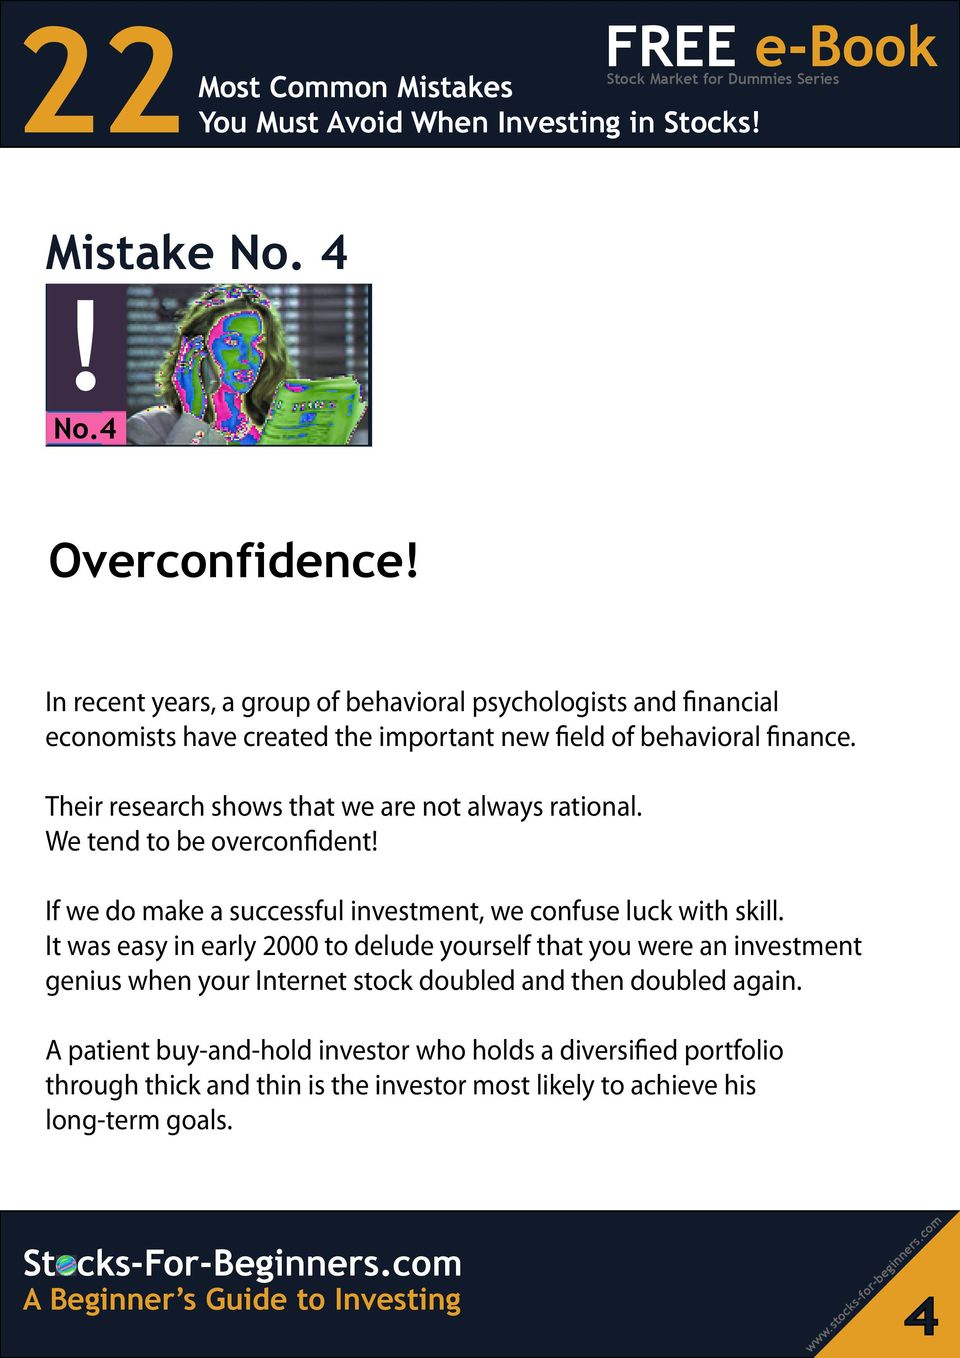 Their research shows that we are not always rational. We tend to be overconfident If we do make a successful investment, we confuse luck with skill.